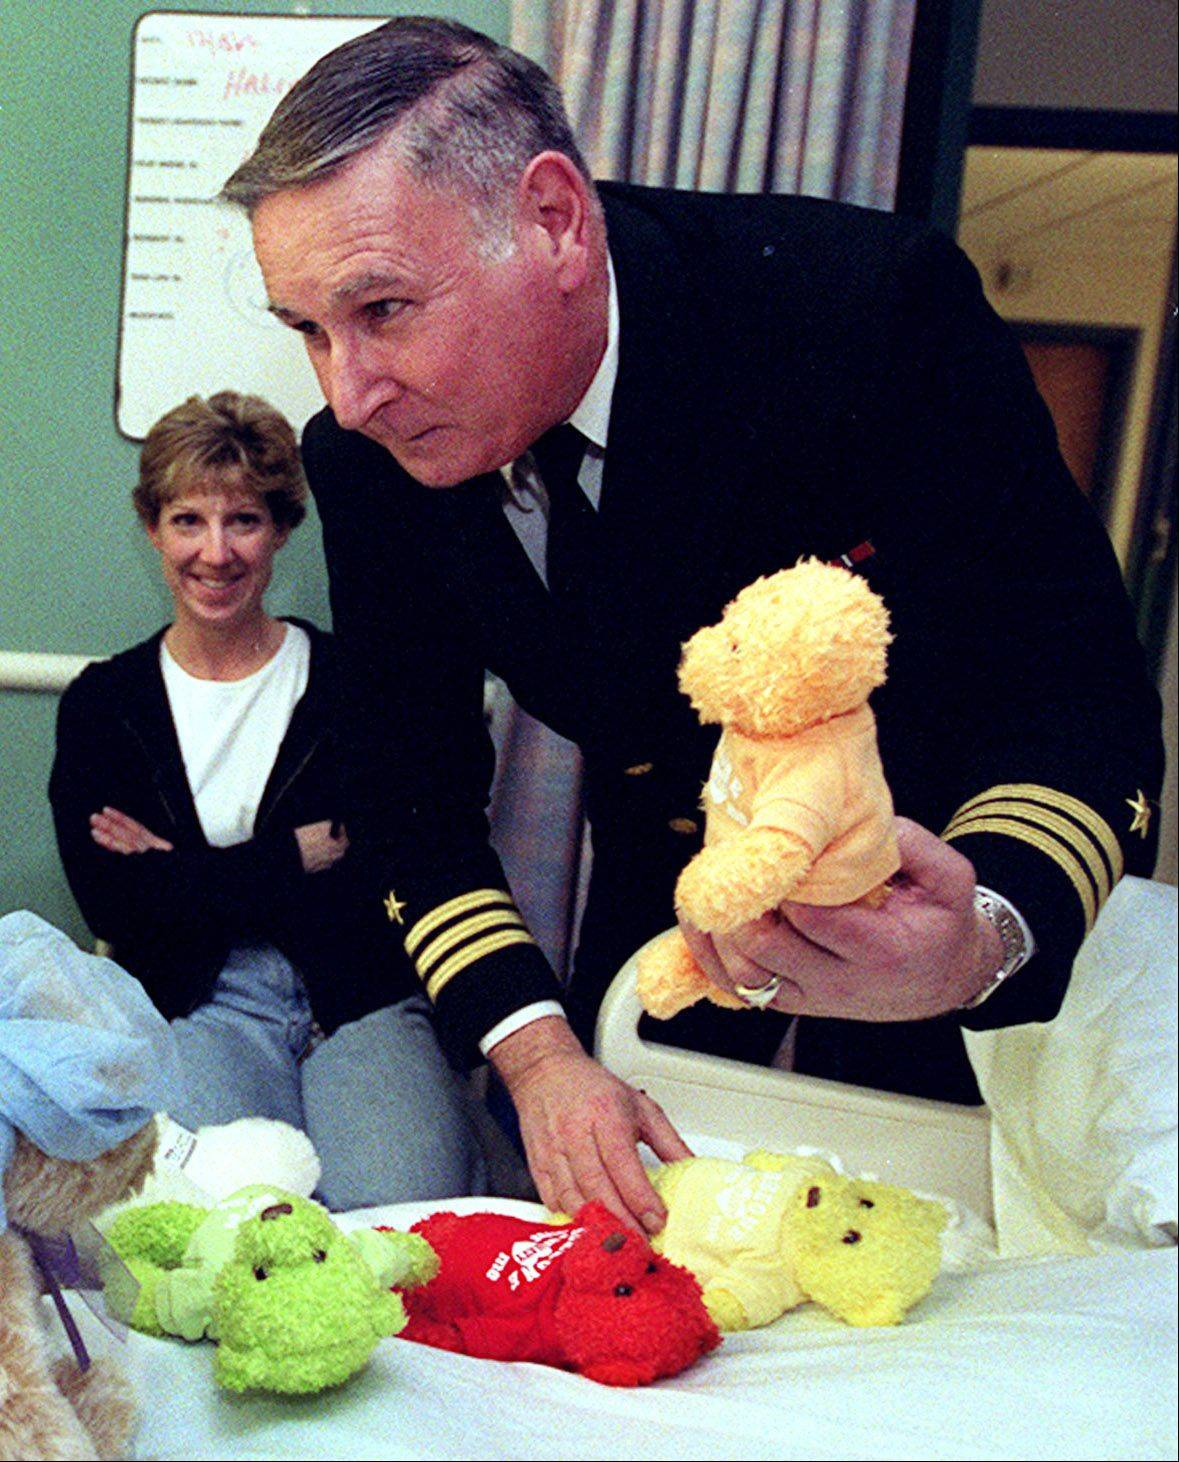 Bob Chwedyk/bchwedyk@dailyherald.com, 2002Douglas Challos, former Hawthorn Woods mayor and retired Navy commander, joined sailors on a visit to children at Advocate Lutheran General Hospital in Park Ridge in 2002. Challos, who also was a public affairs officer at Great Lakes Naval Station, died in 2012.